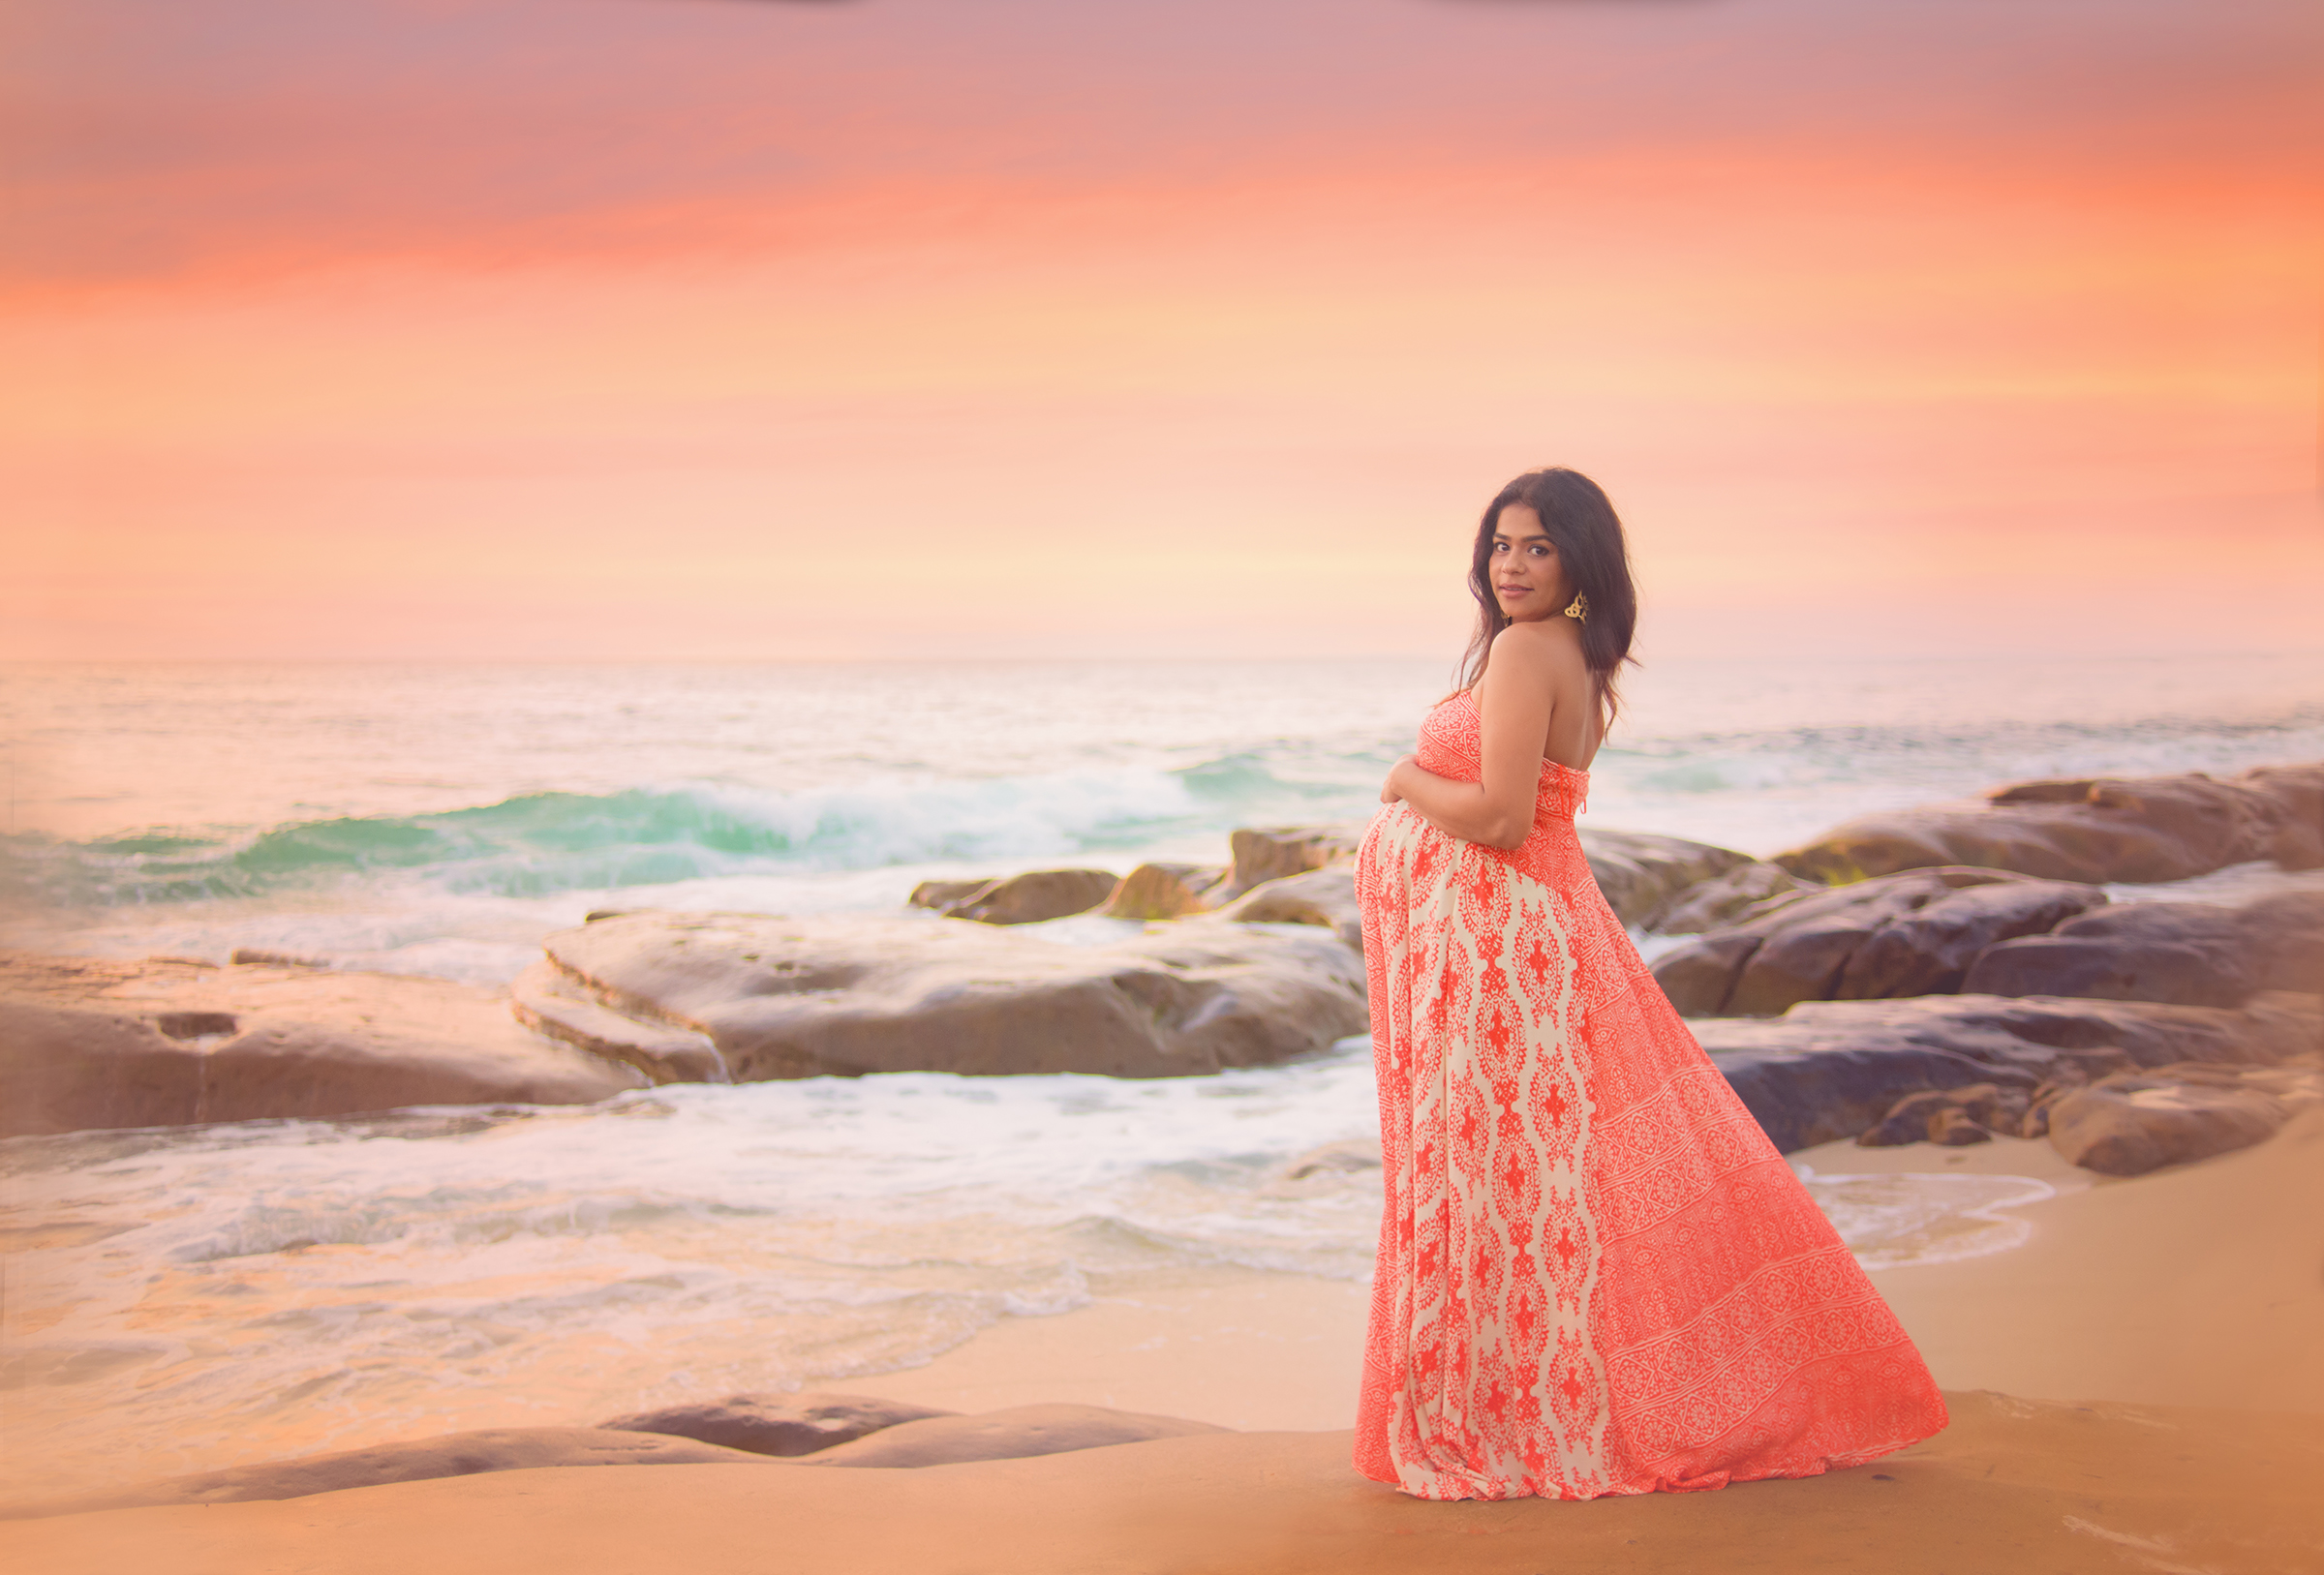 Beautiful maternity photography in La Jolla, CA